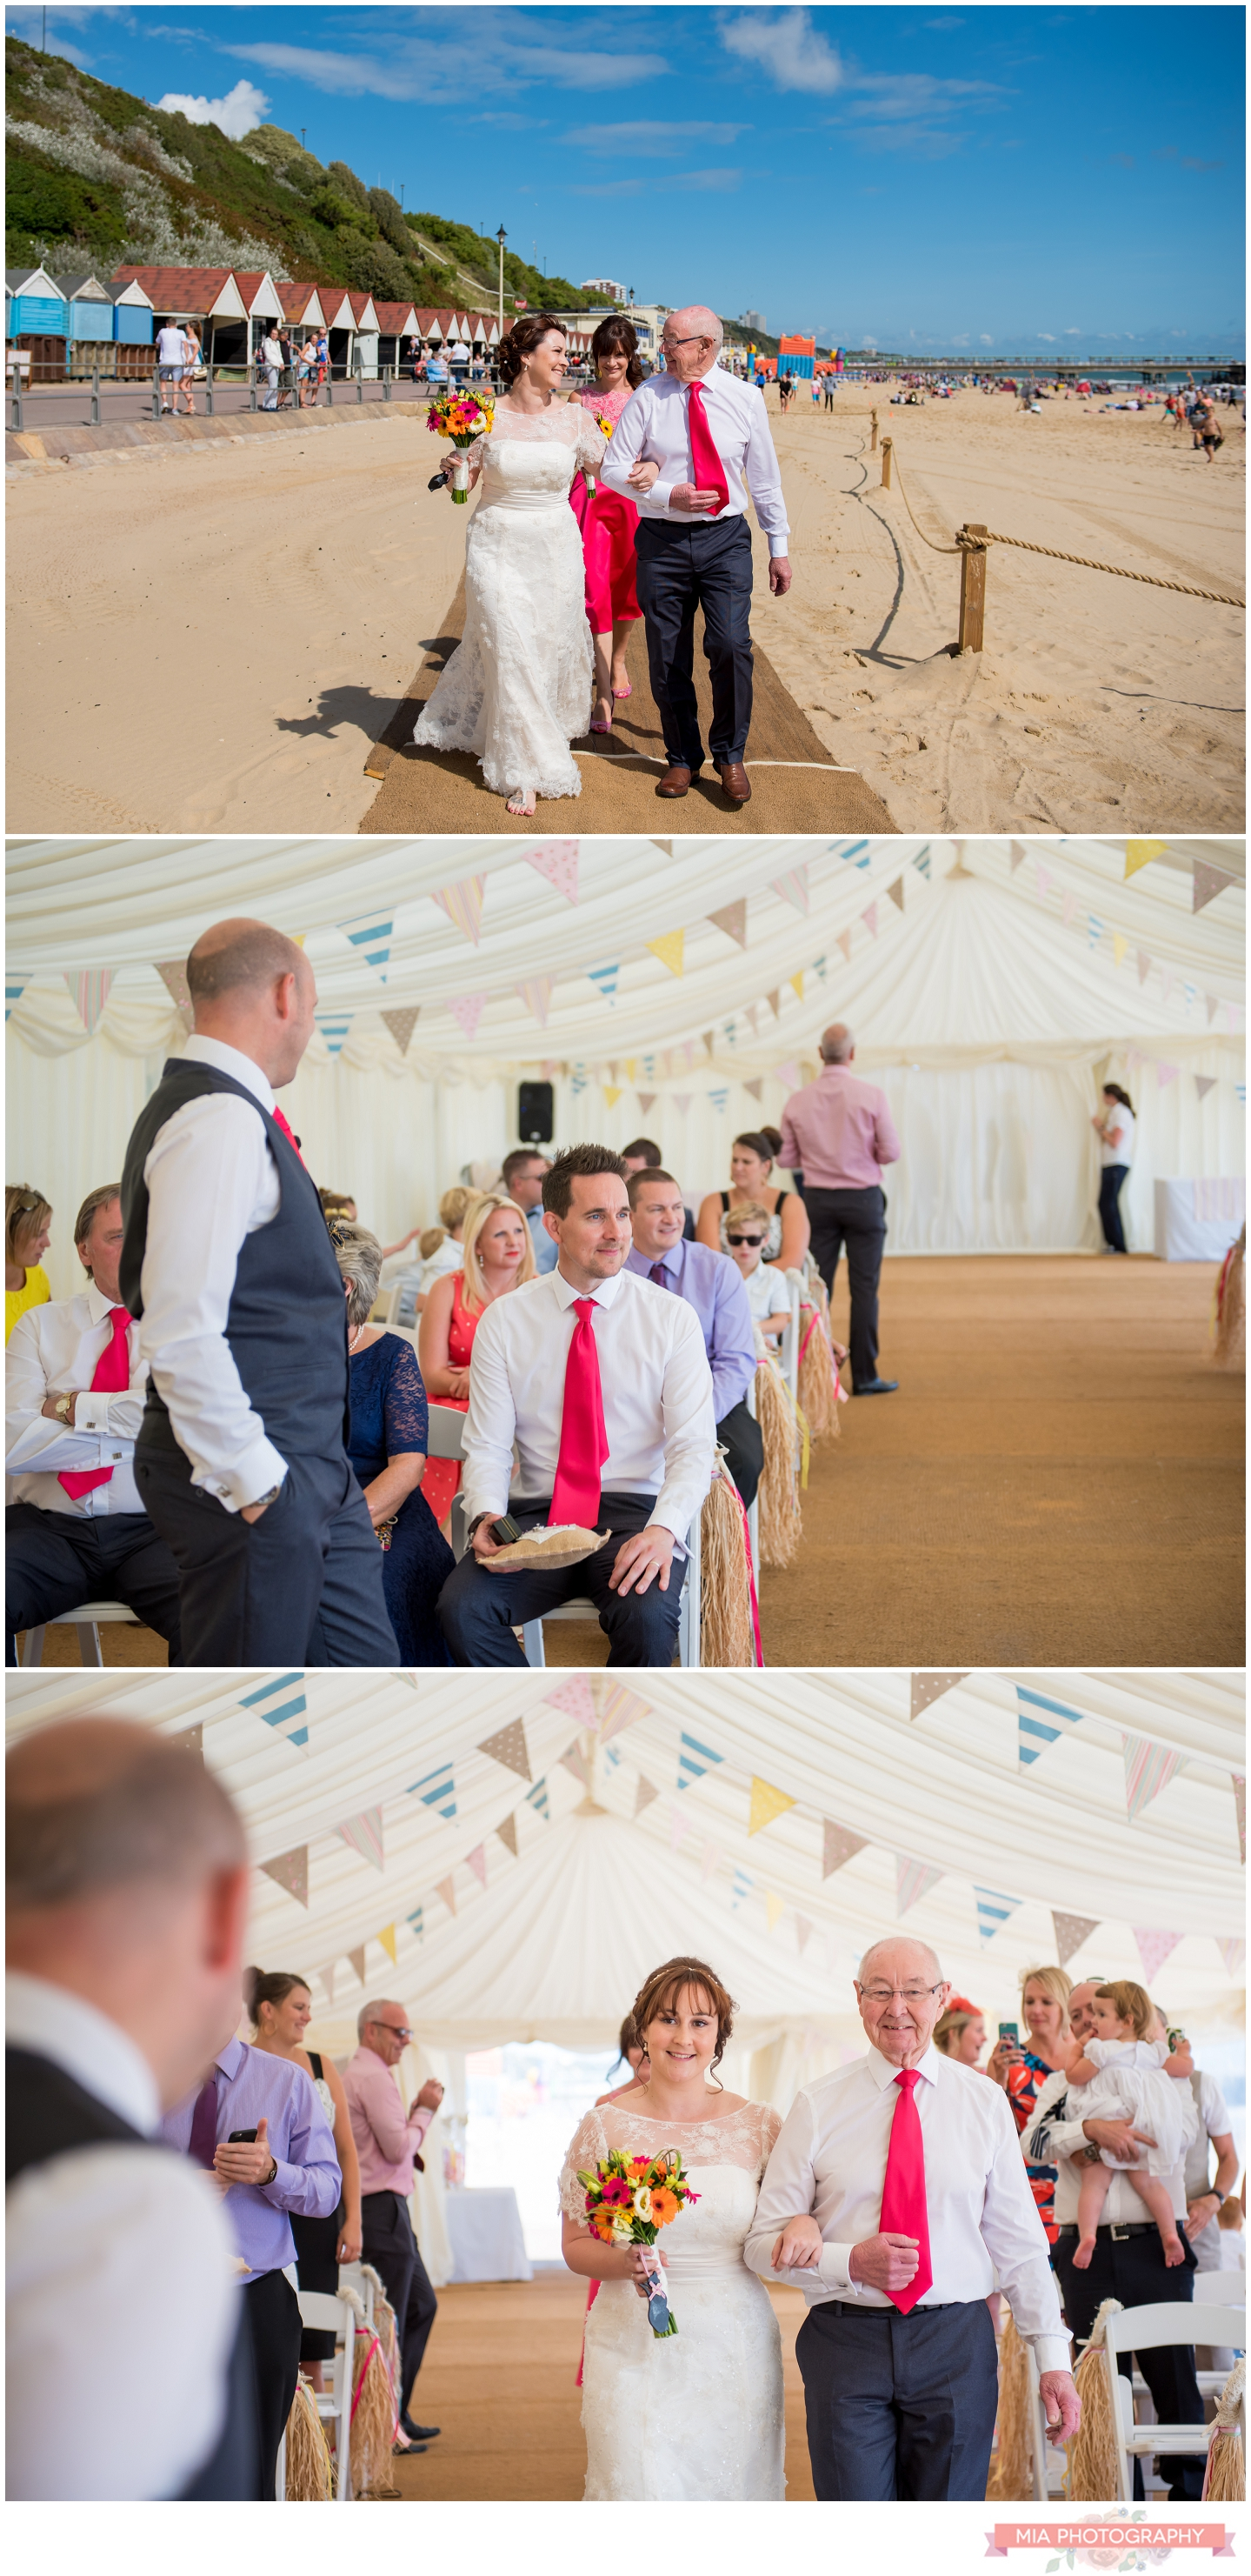 Beach-weddings-bournemouth-009